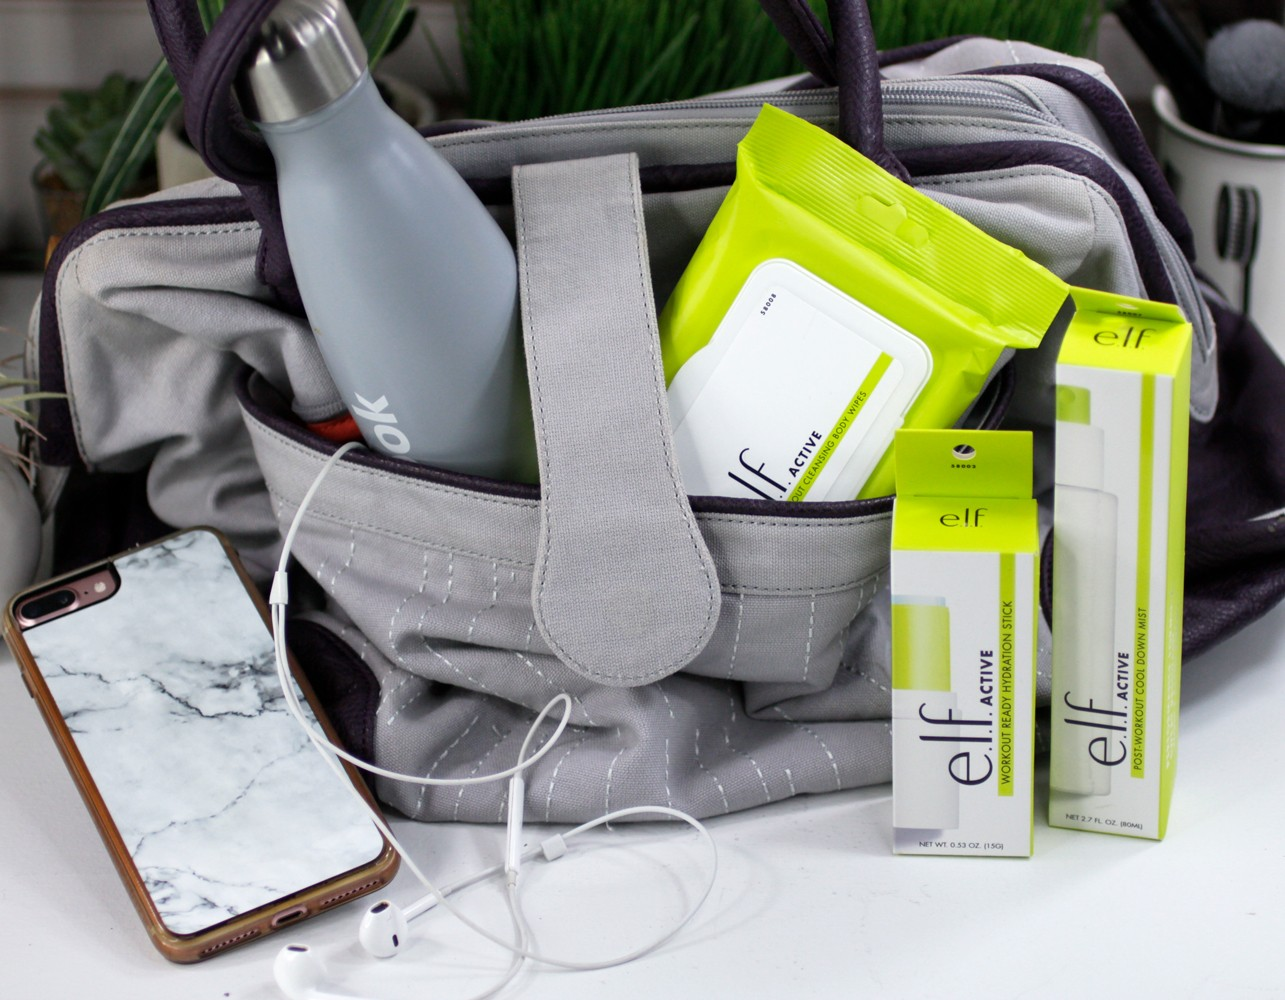 Elf Active Skincare and Makeup for the Gym